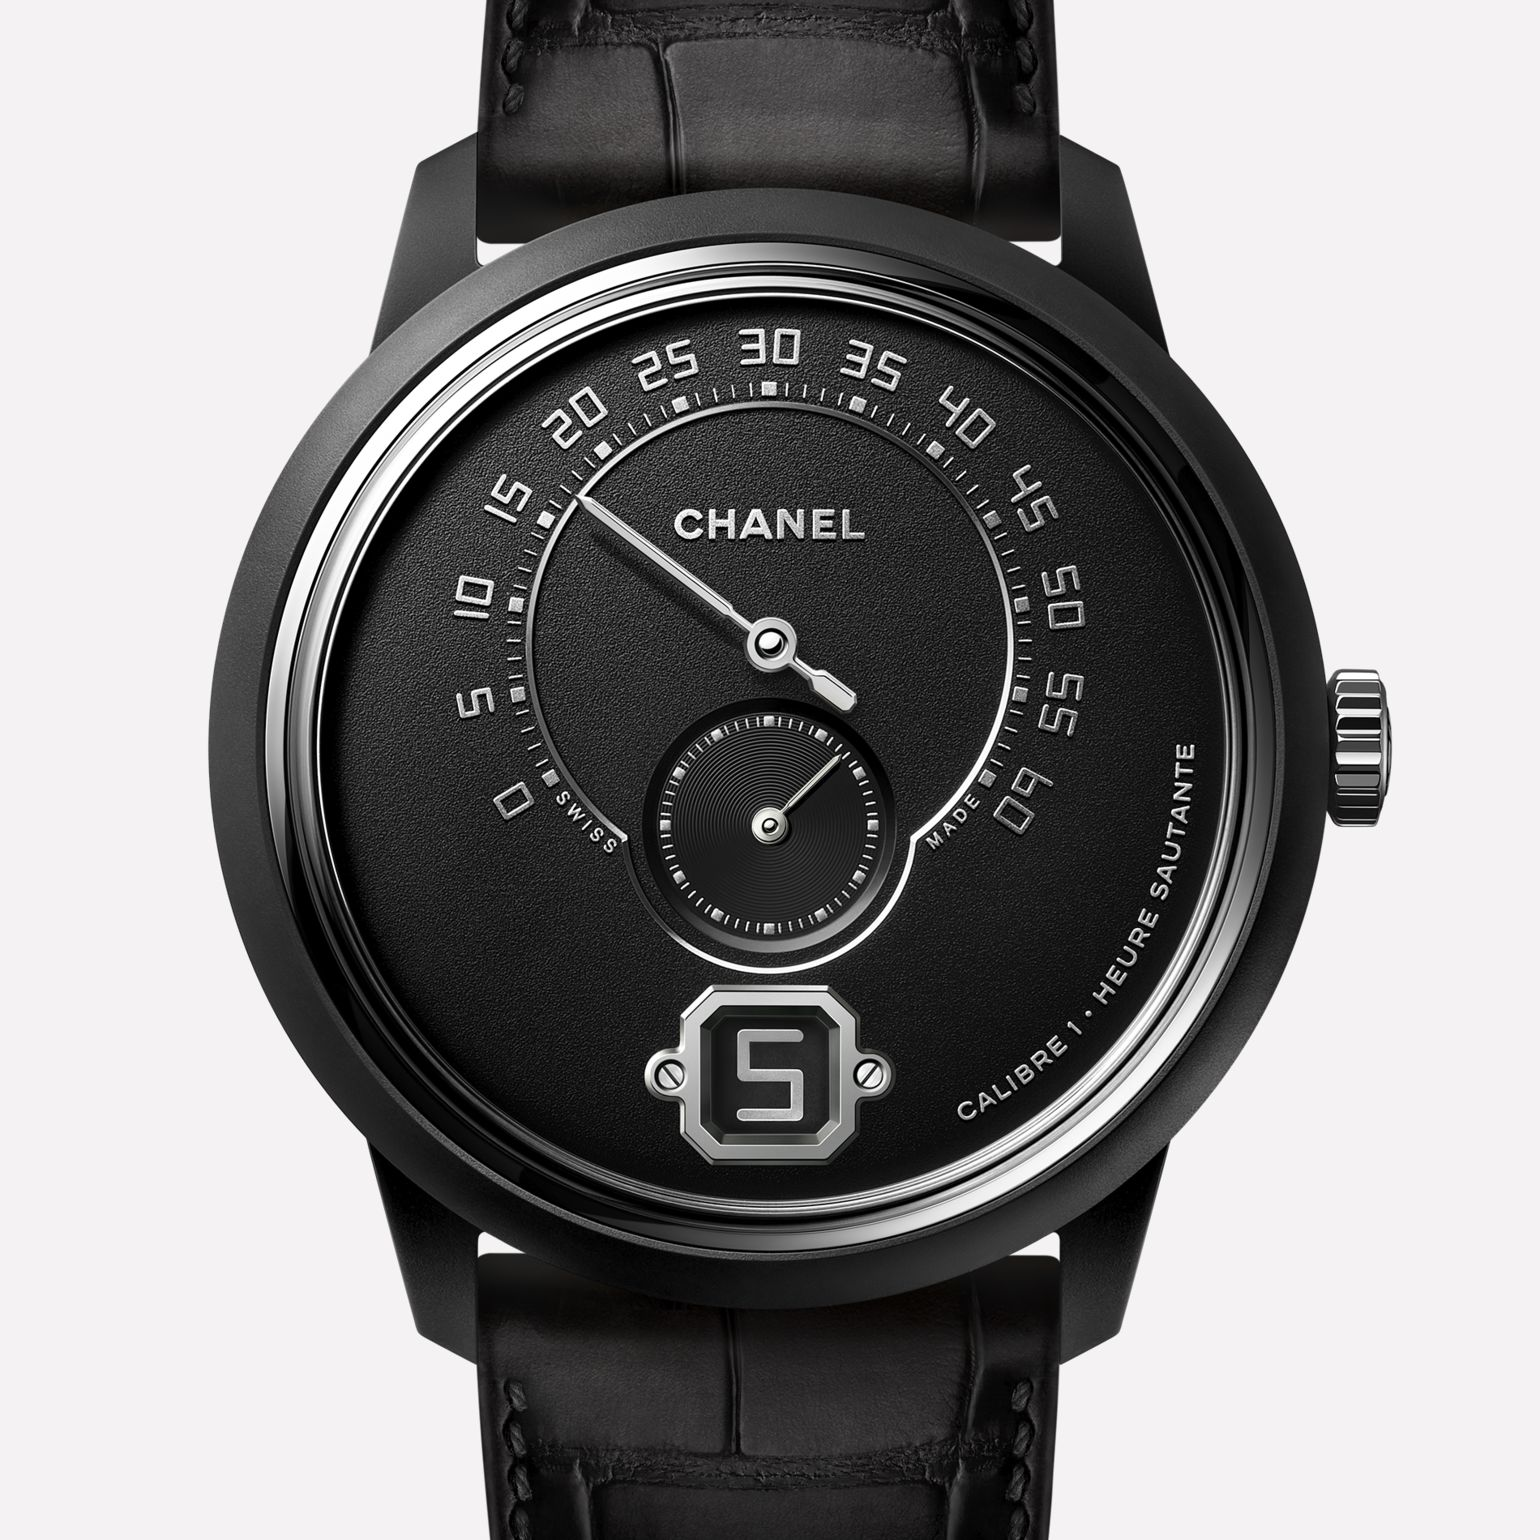 Monsieur Watch Matt black highly resistant ceramic and steel, matt black dial with jumping hour, 240° retrograde minute and small second counter